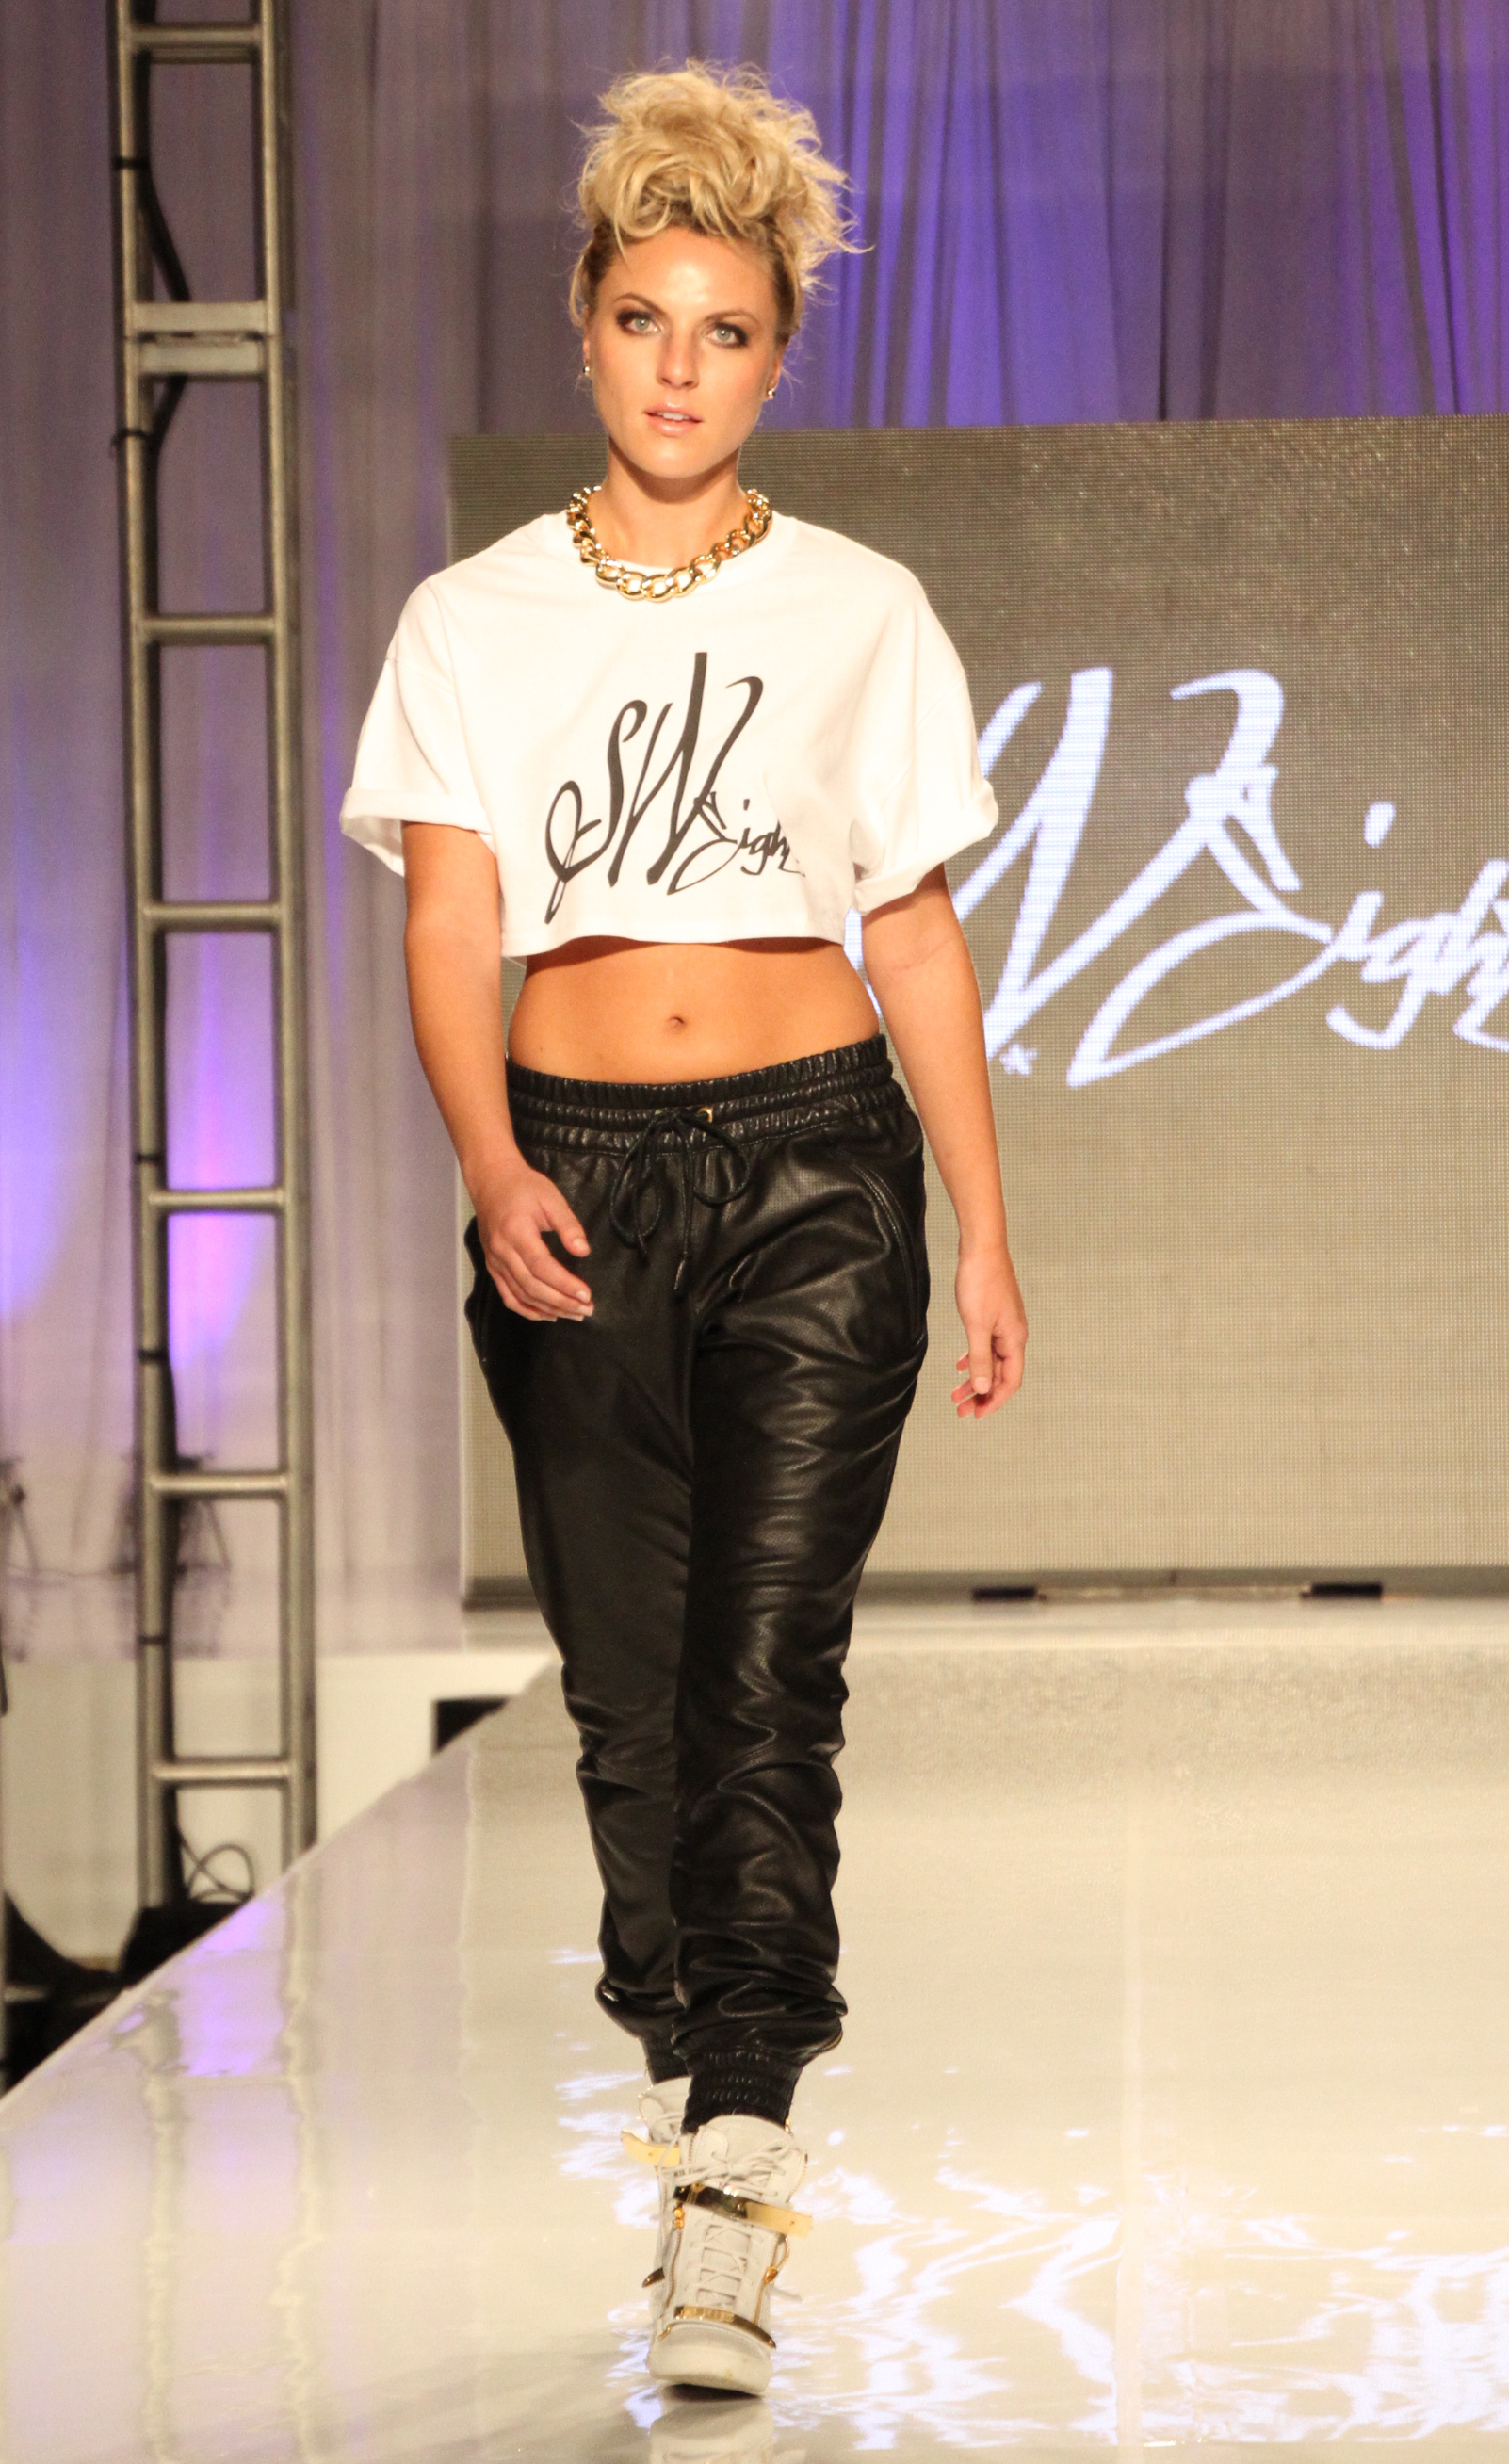 Anne-Phillips-Photography-FWTB-2014-runway-SW8-IMG_8163